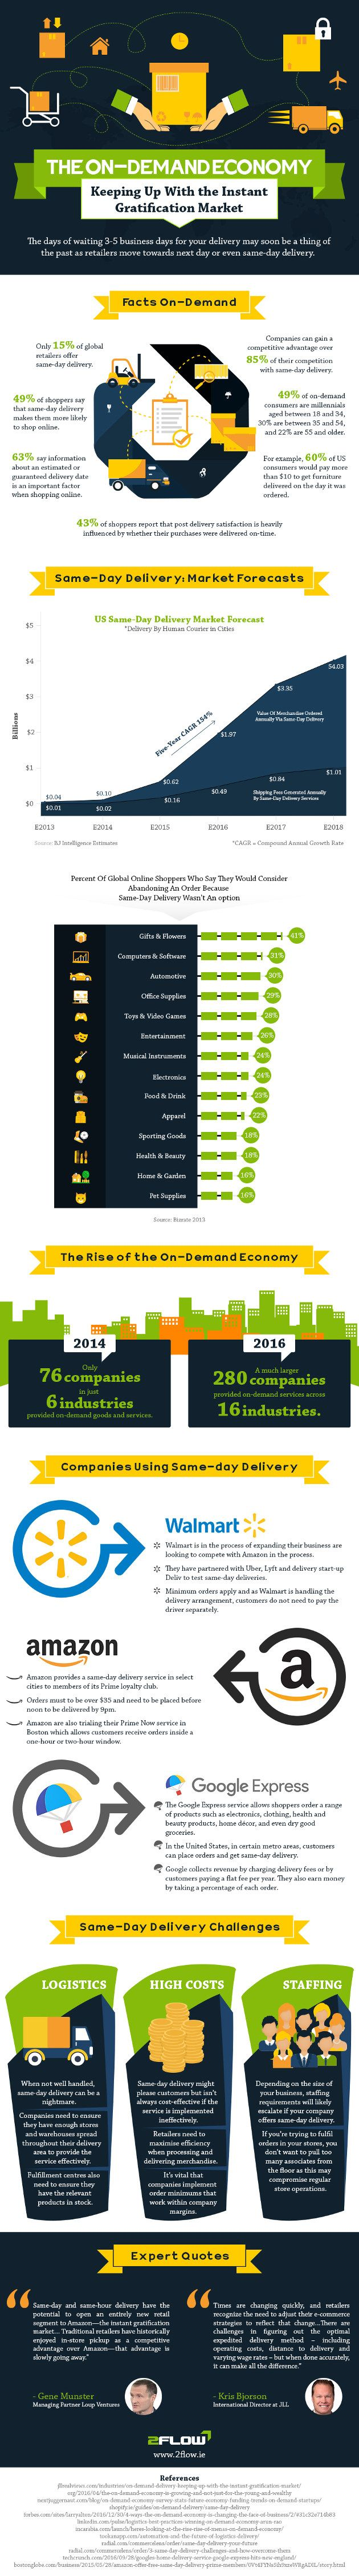 #Marketing #Infographics - The OnDemand Economy - Keeping Up With The Instant Gratification Market